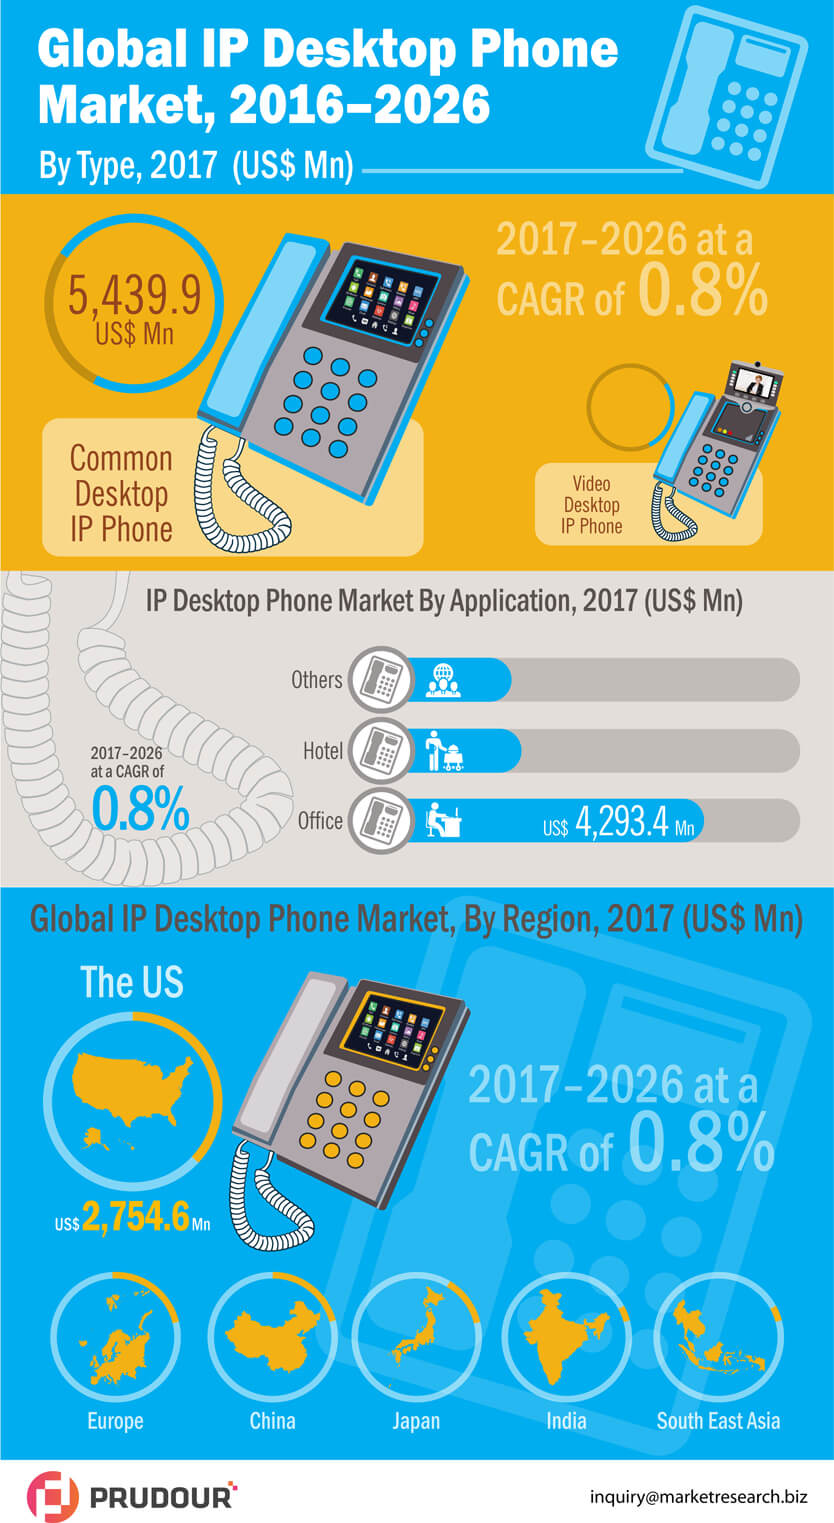 Worldwide Desktop IP Phone Market is projected to reach US$ 27,585.3 Mn in 2026